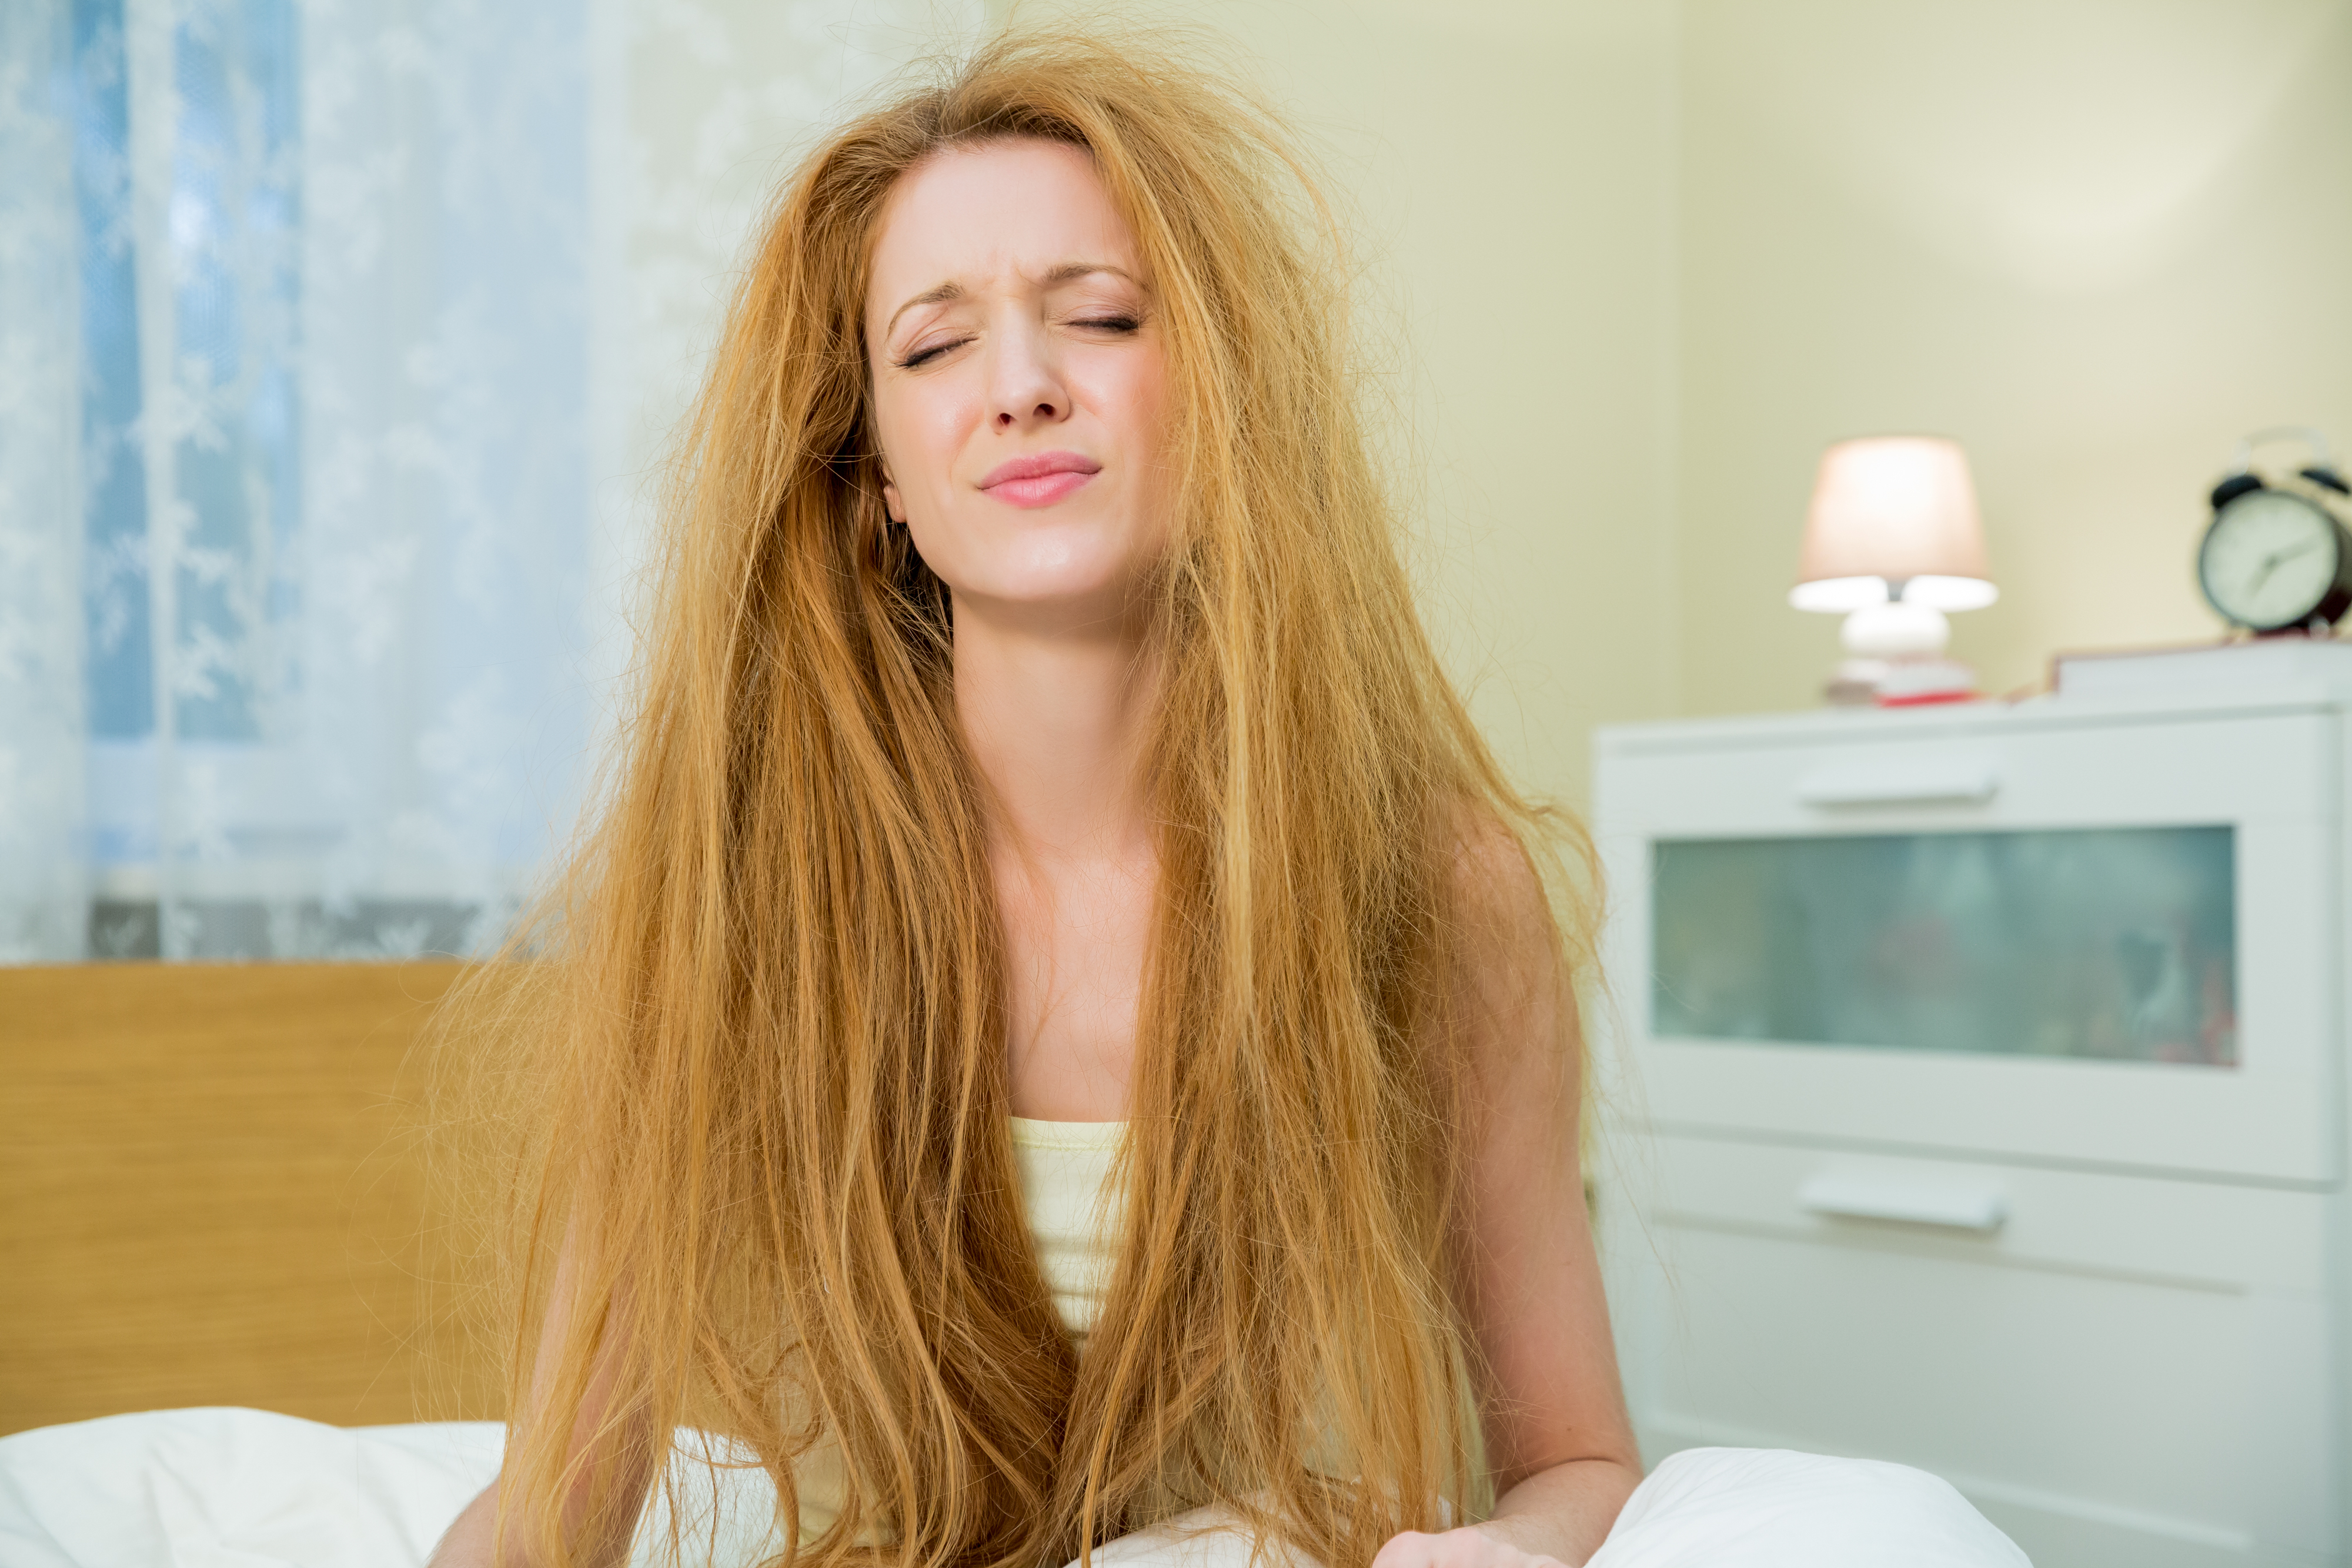 Maybe Start Brushing Your Hair In The Morning, Because You Look Like Shit